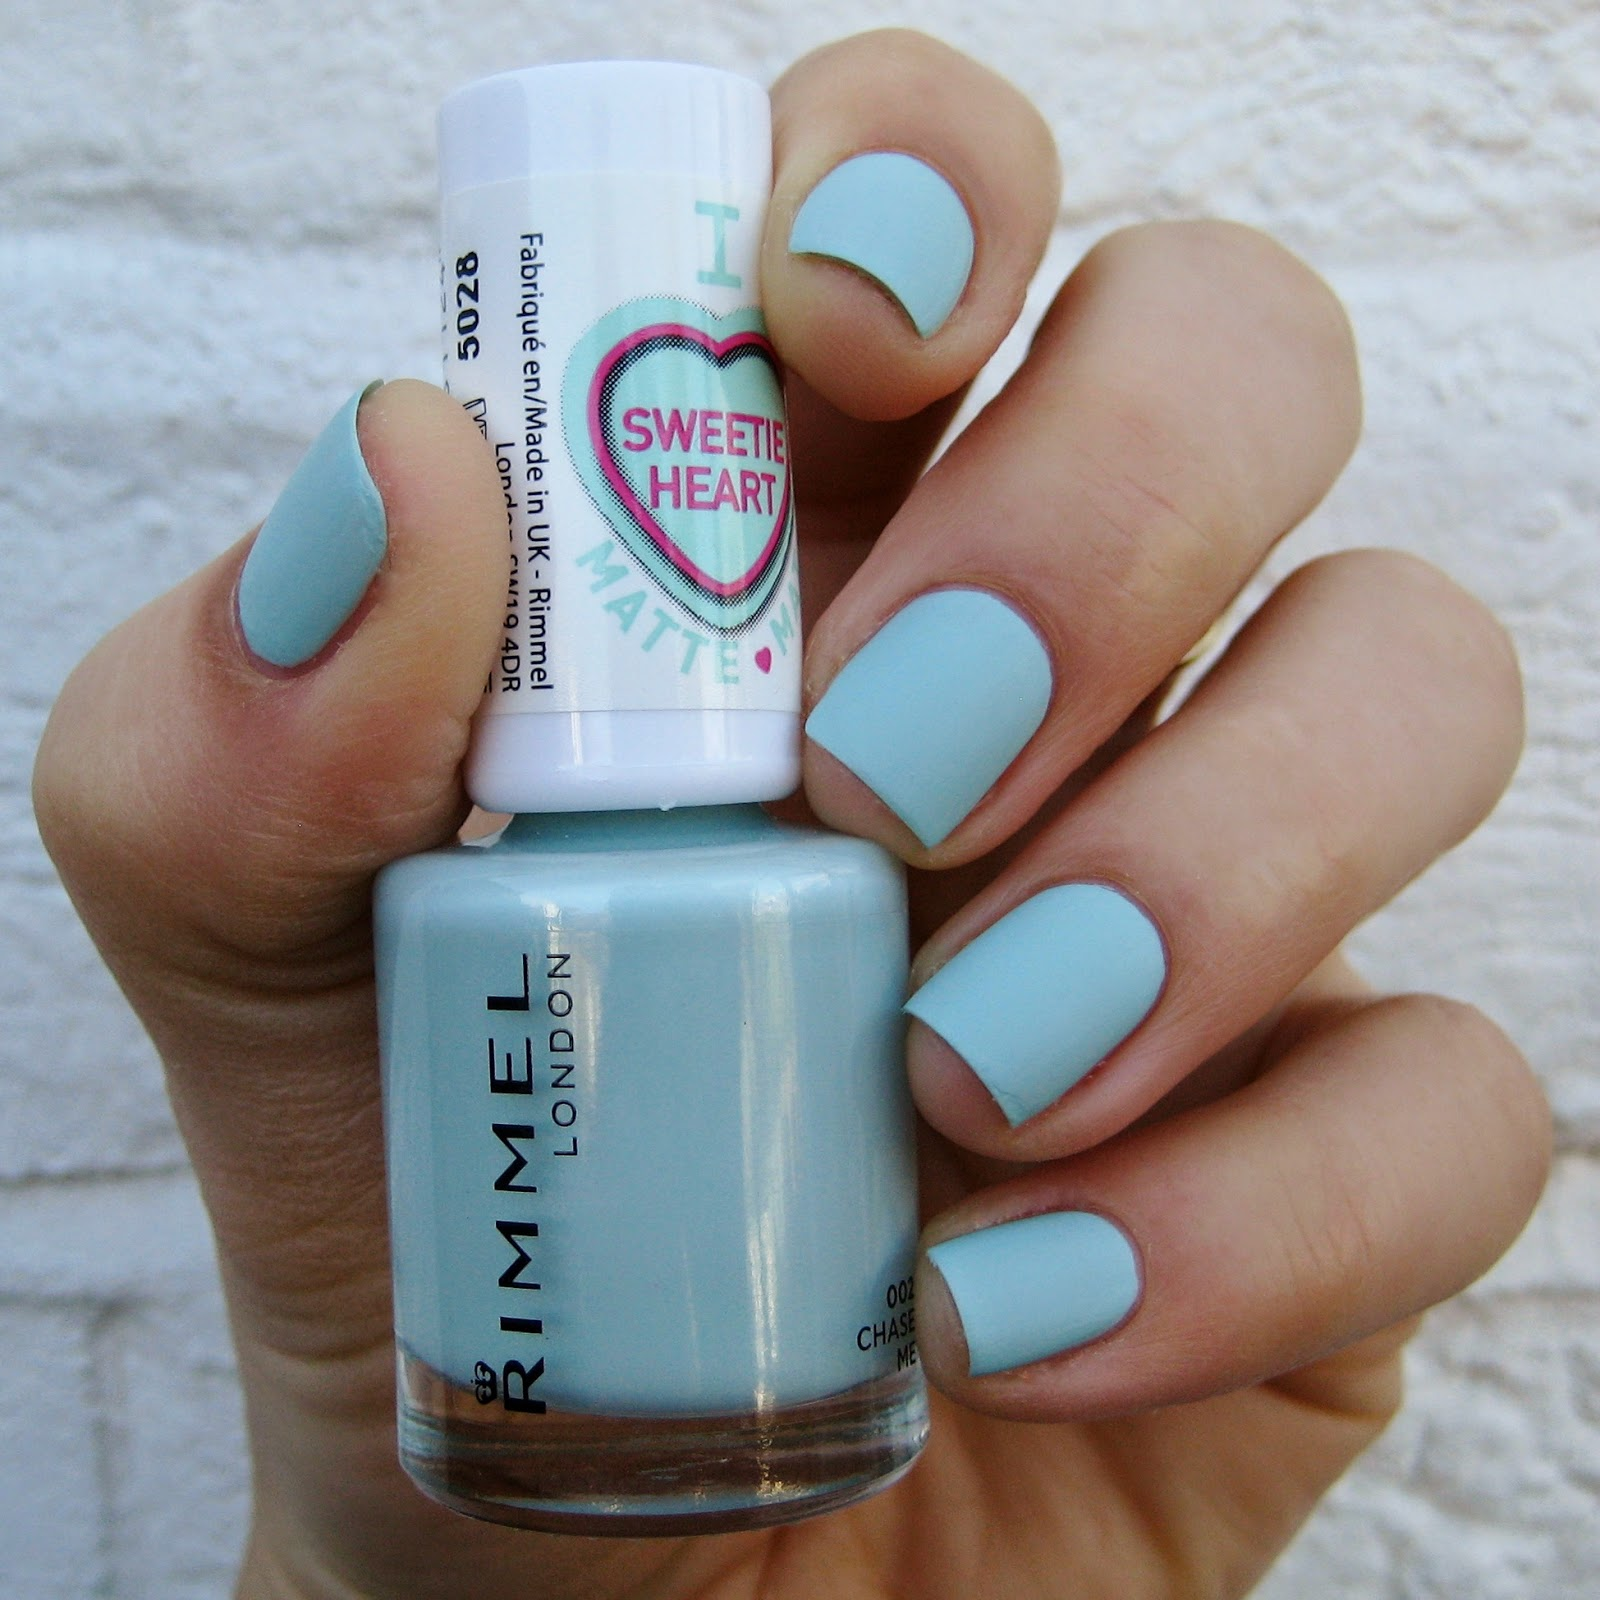 Rimmel London Sweetie Heart Matte Pastels Chase Me